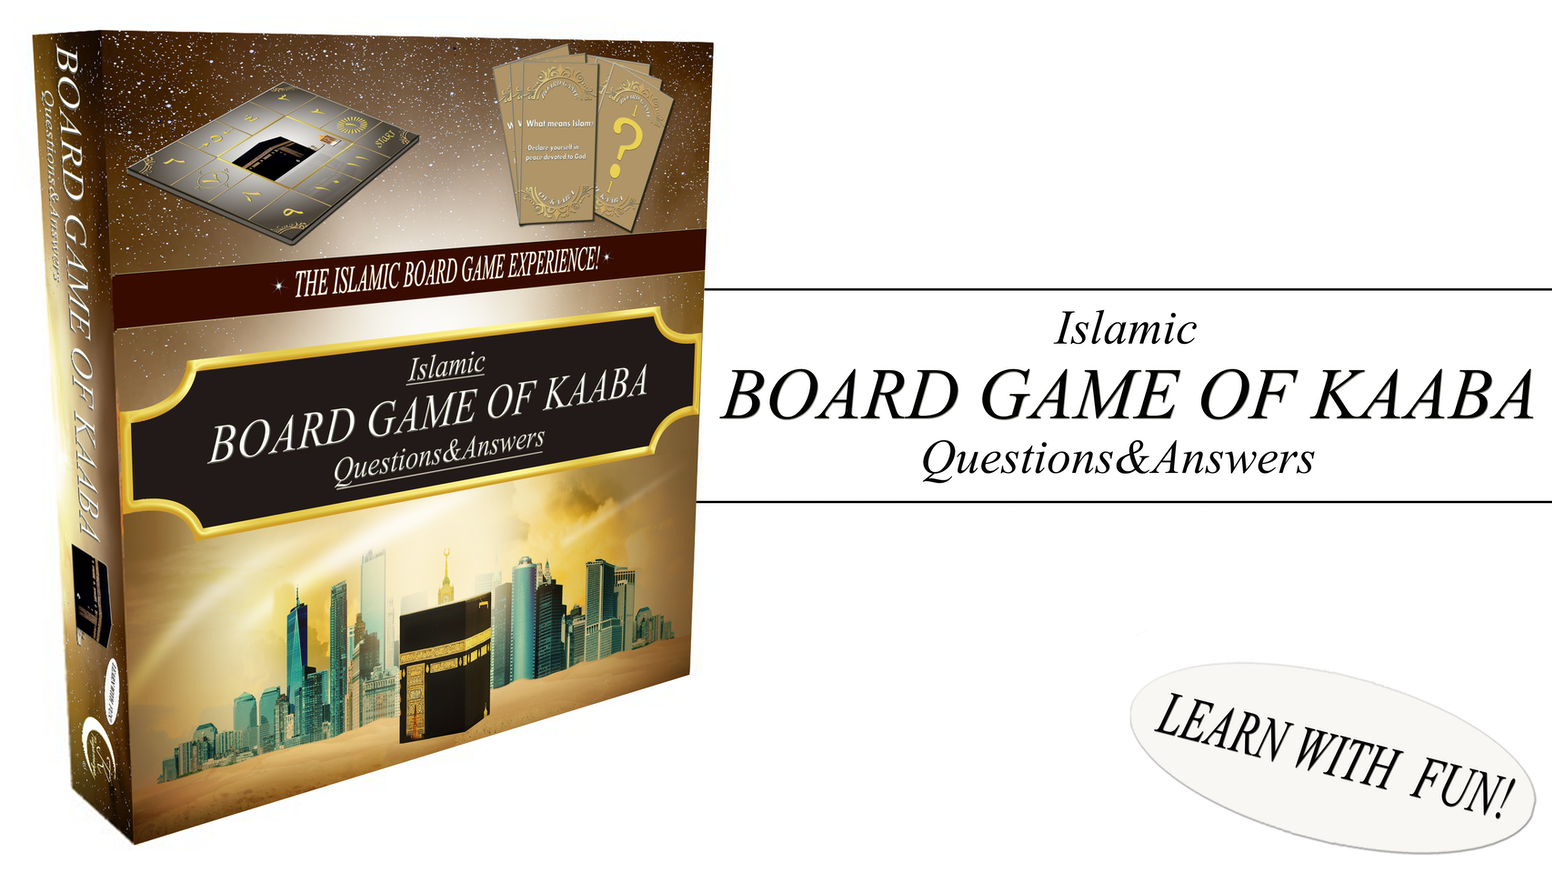 The islamic board game experience! Learn more about islam with fun with your family and friends!